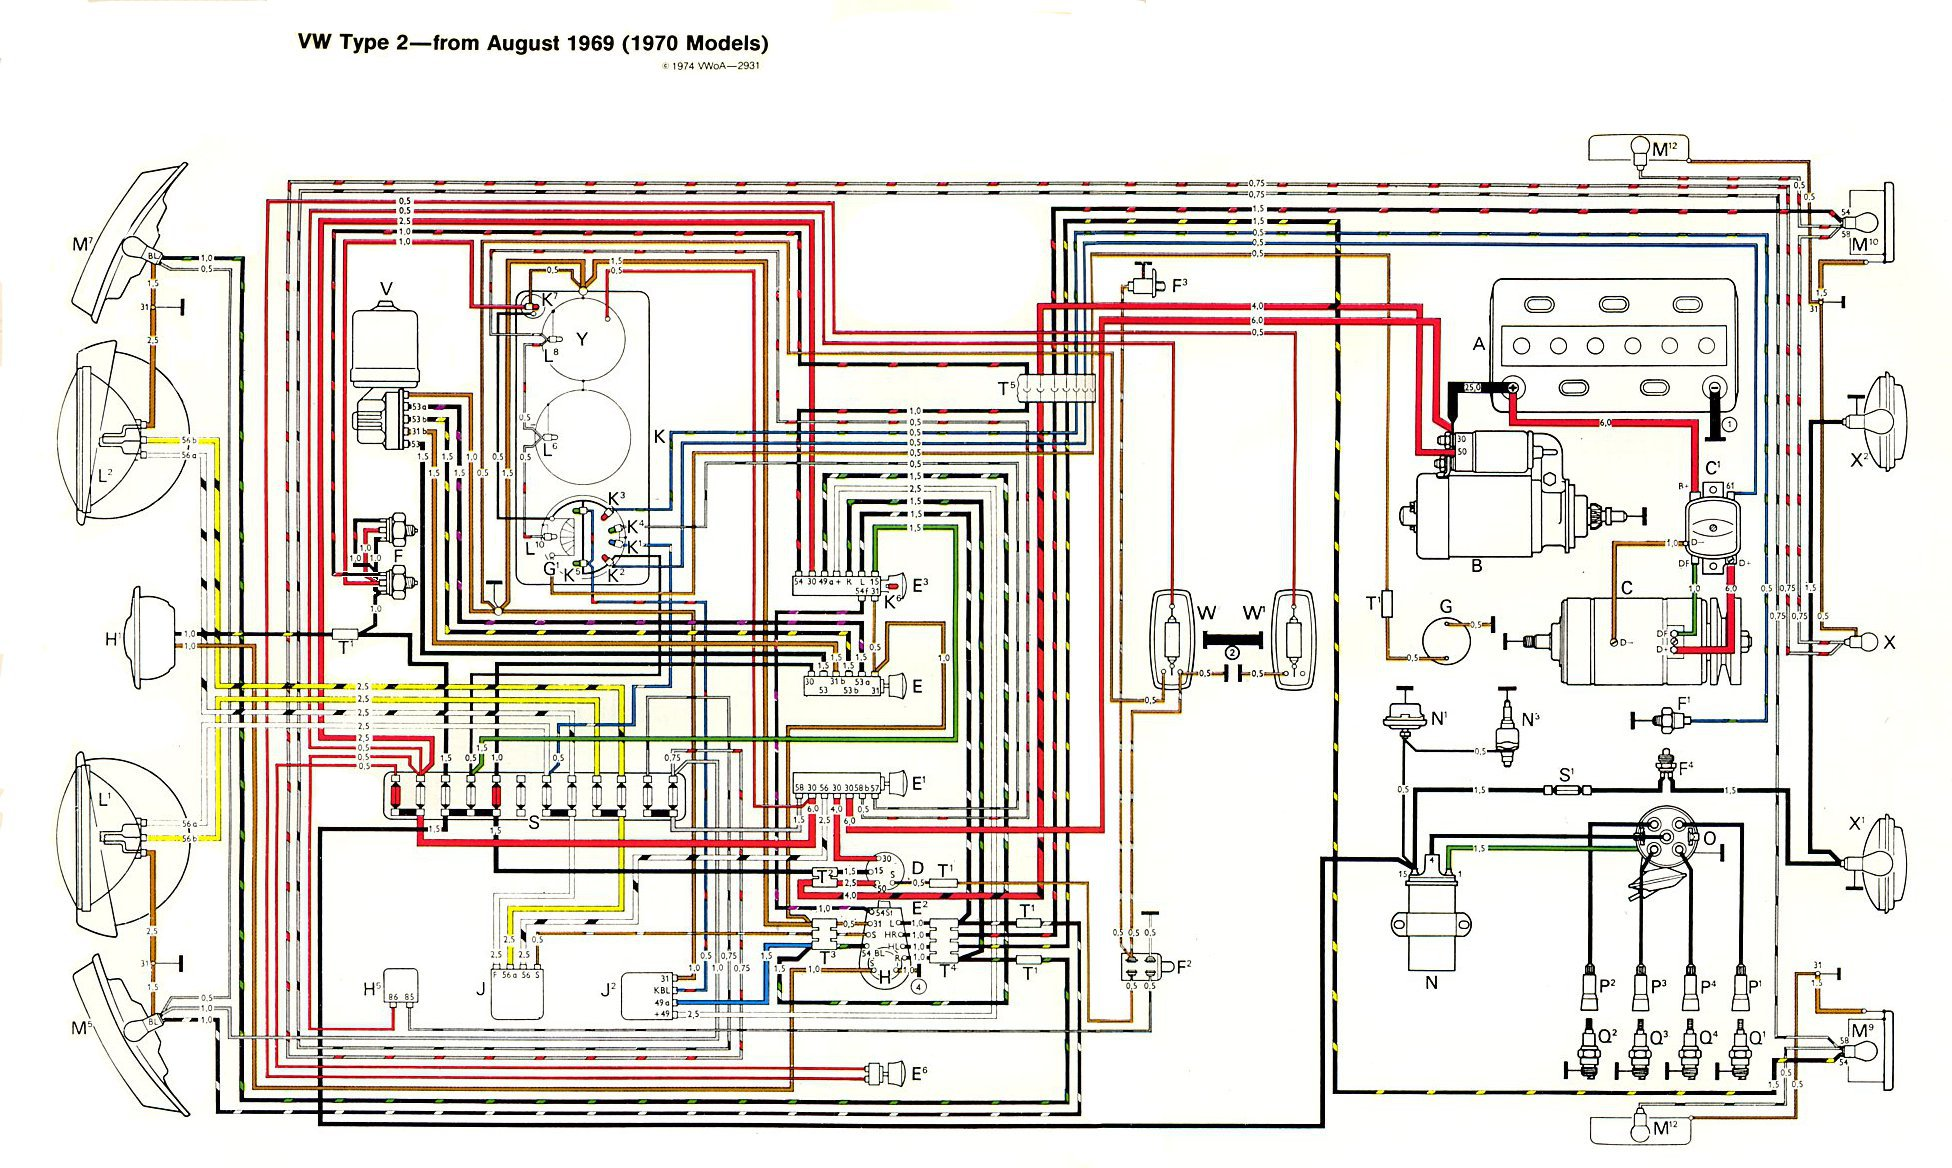 baybus_70 thesamba com type 2 wiring diagrams 1968 vw bug wiring diagram at aneh.co